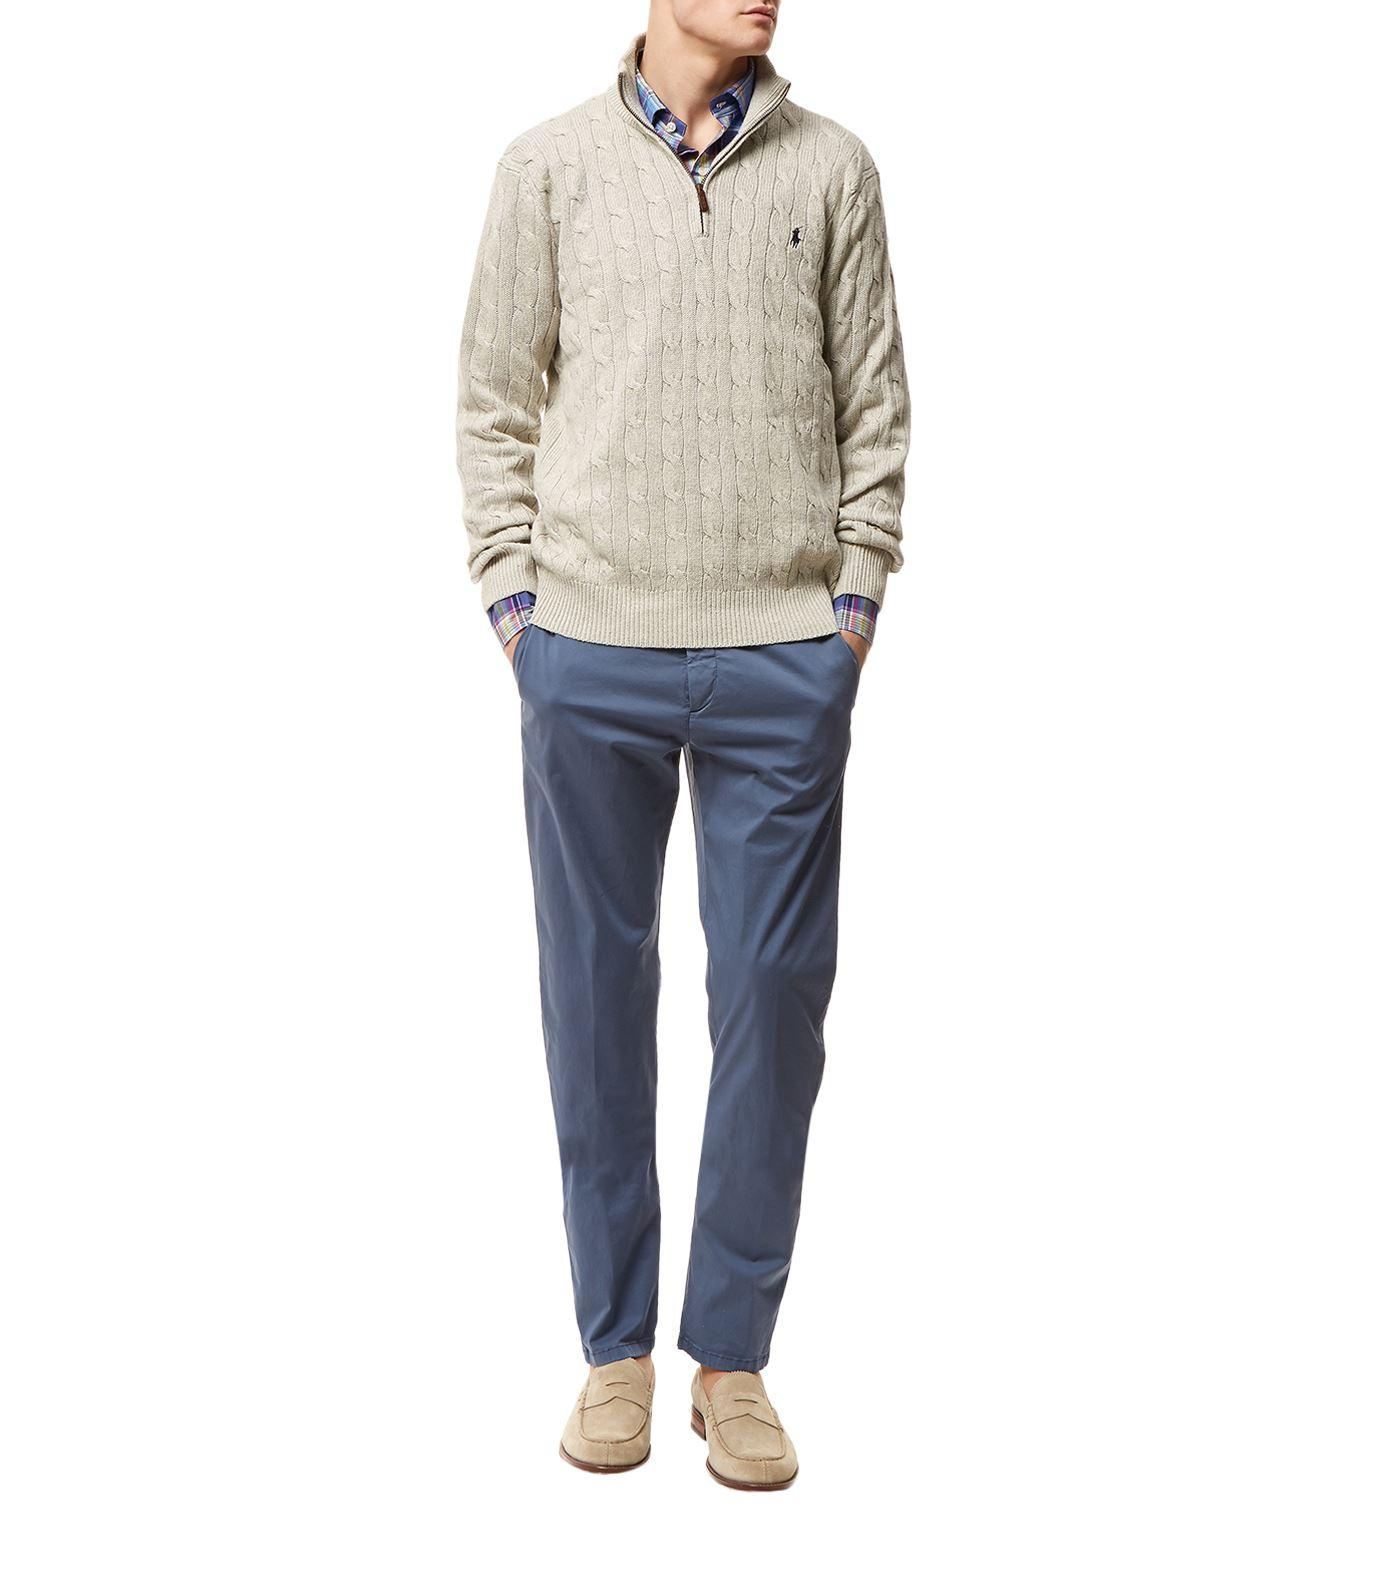 Knitting Jumpers For Elephants Fake : Polo ralph lauren silk cable knit jumper in gray for men